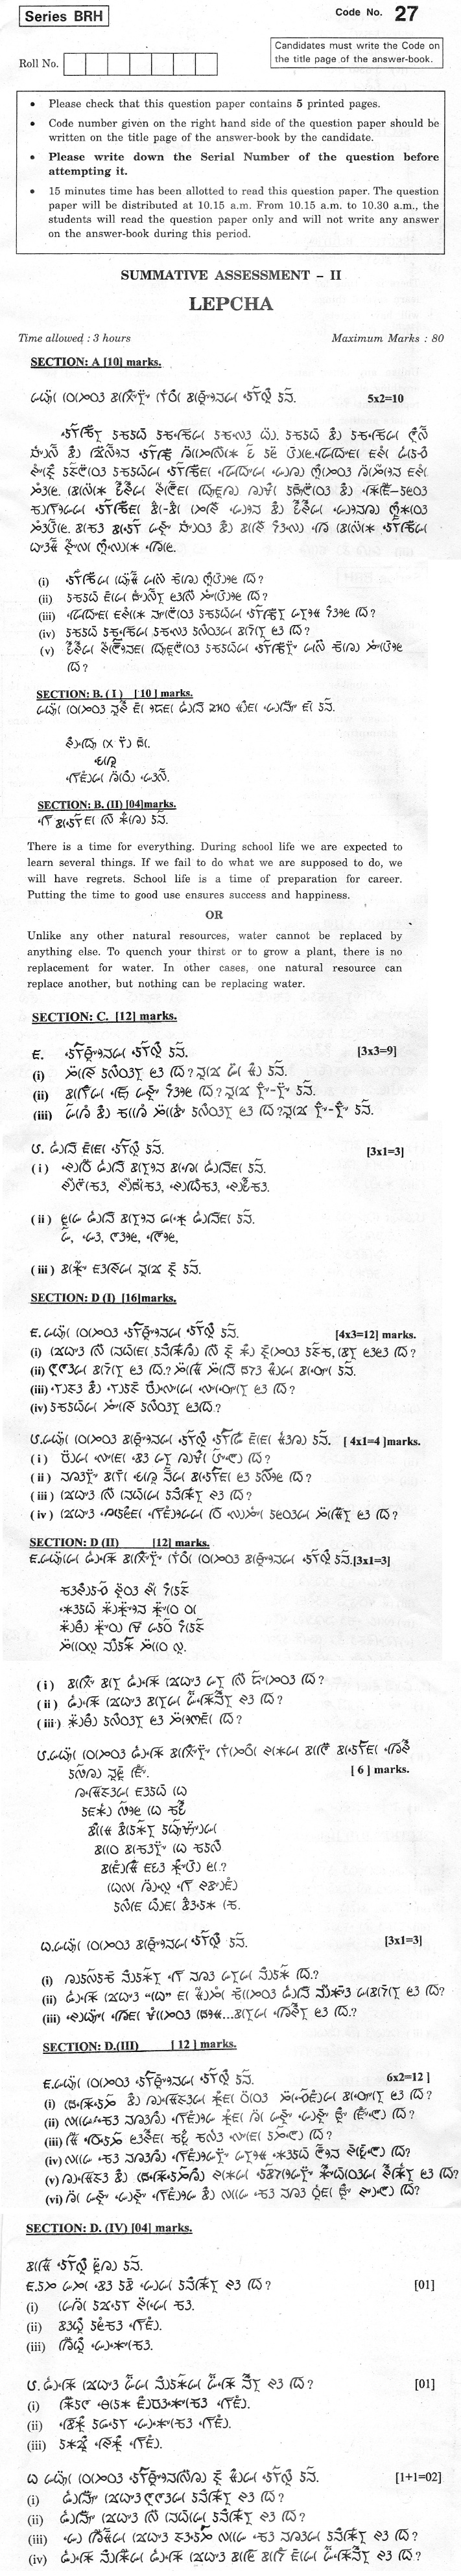 CBSE Class X Previous Year Question Papers 2012 Lepcha